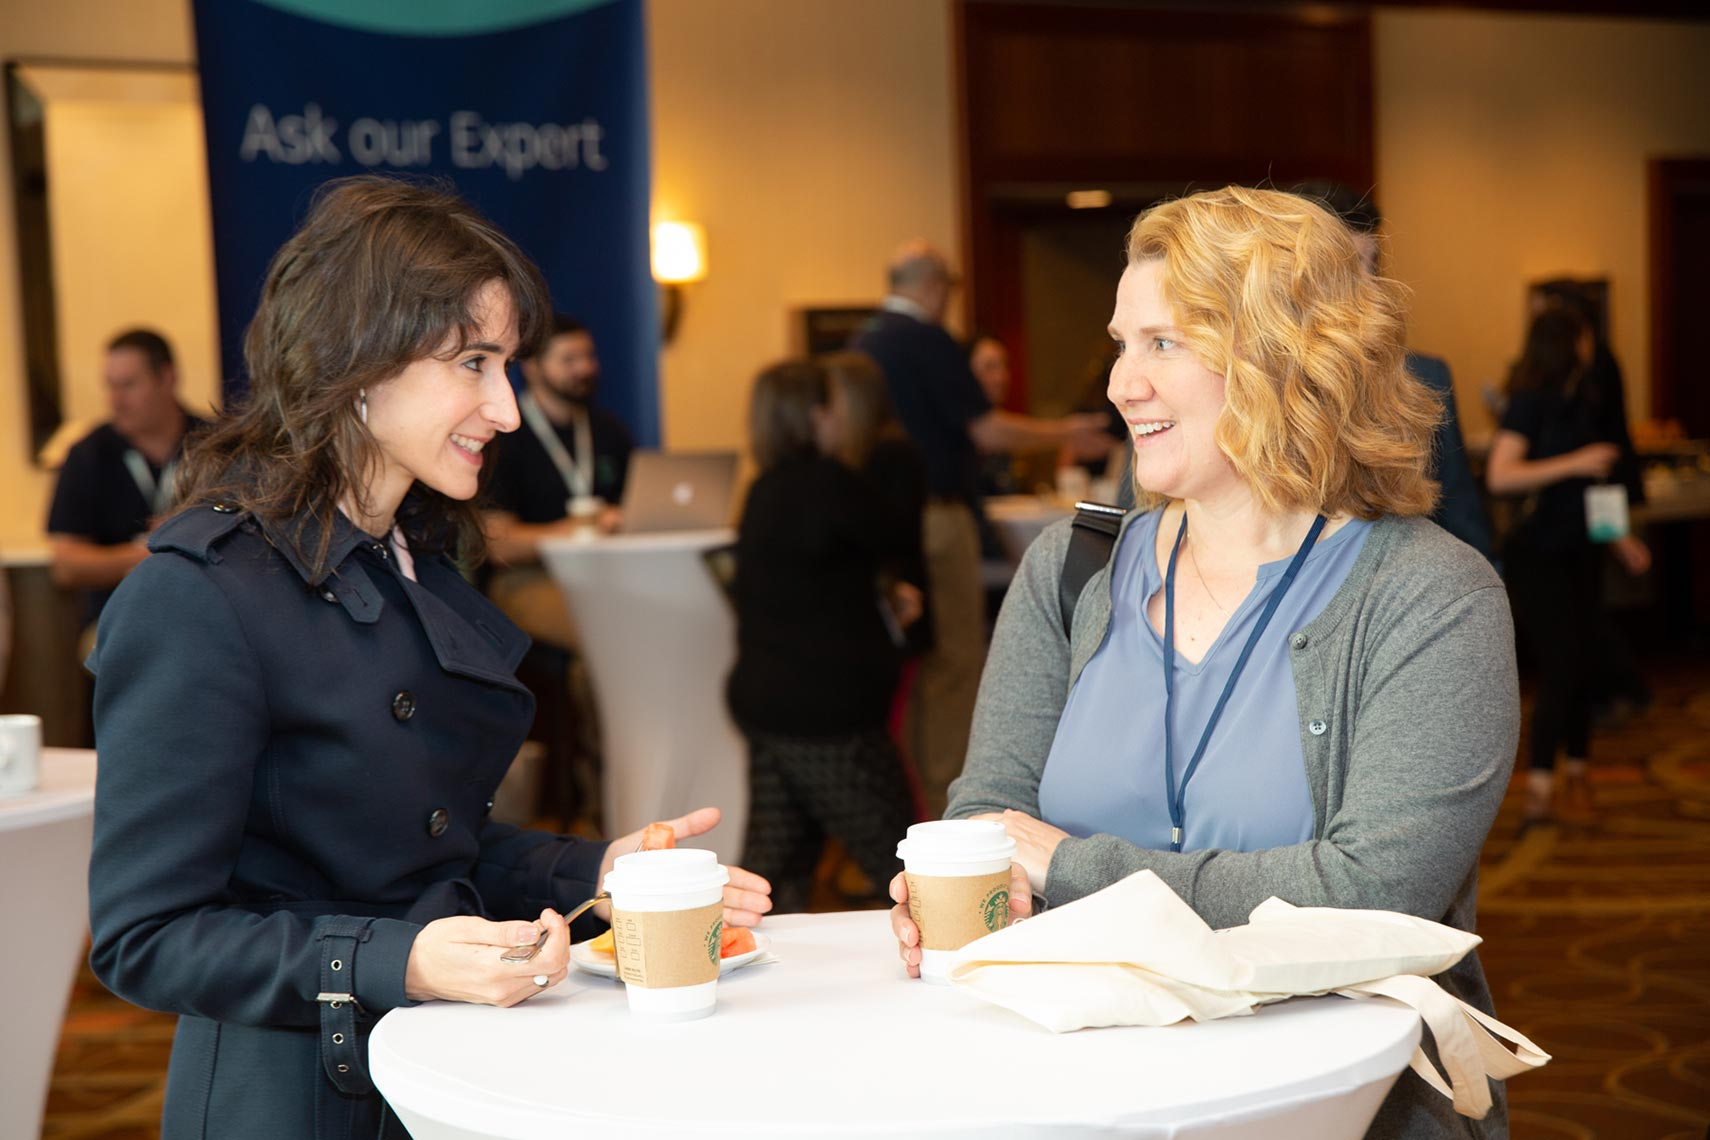 Two women networking during a break at Engage Boston